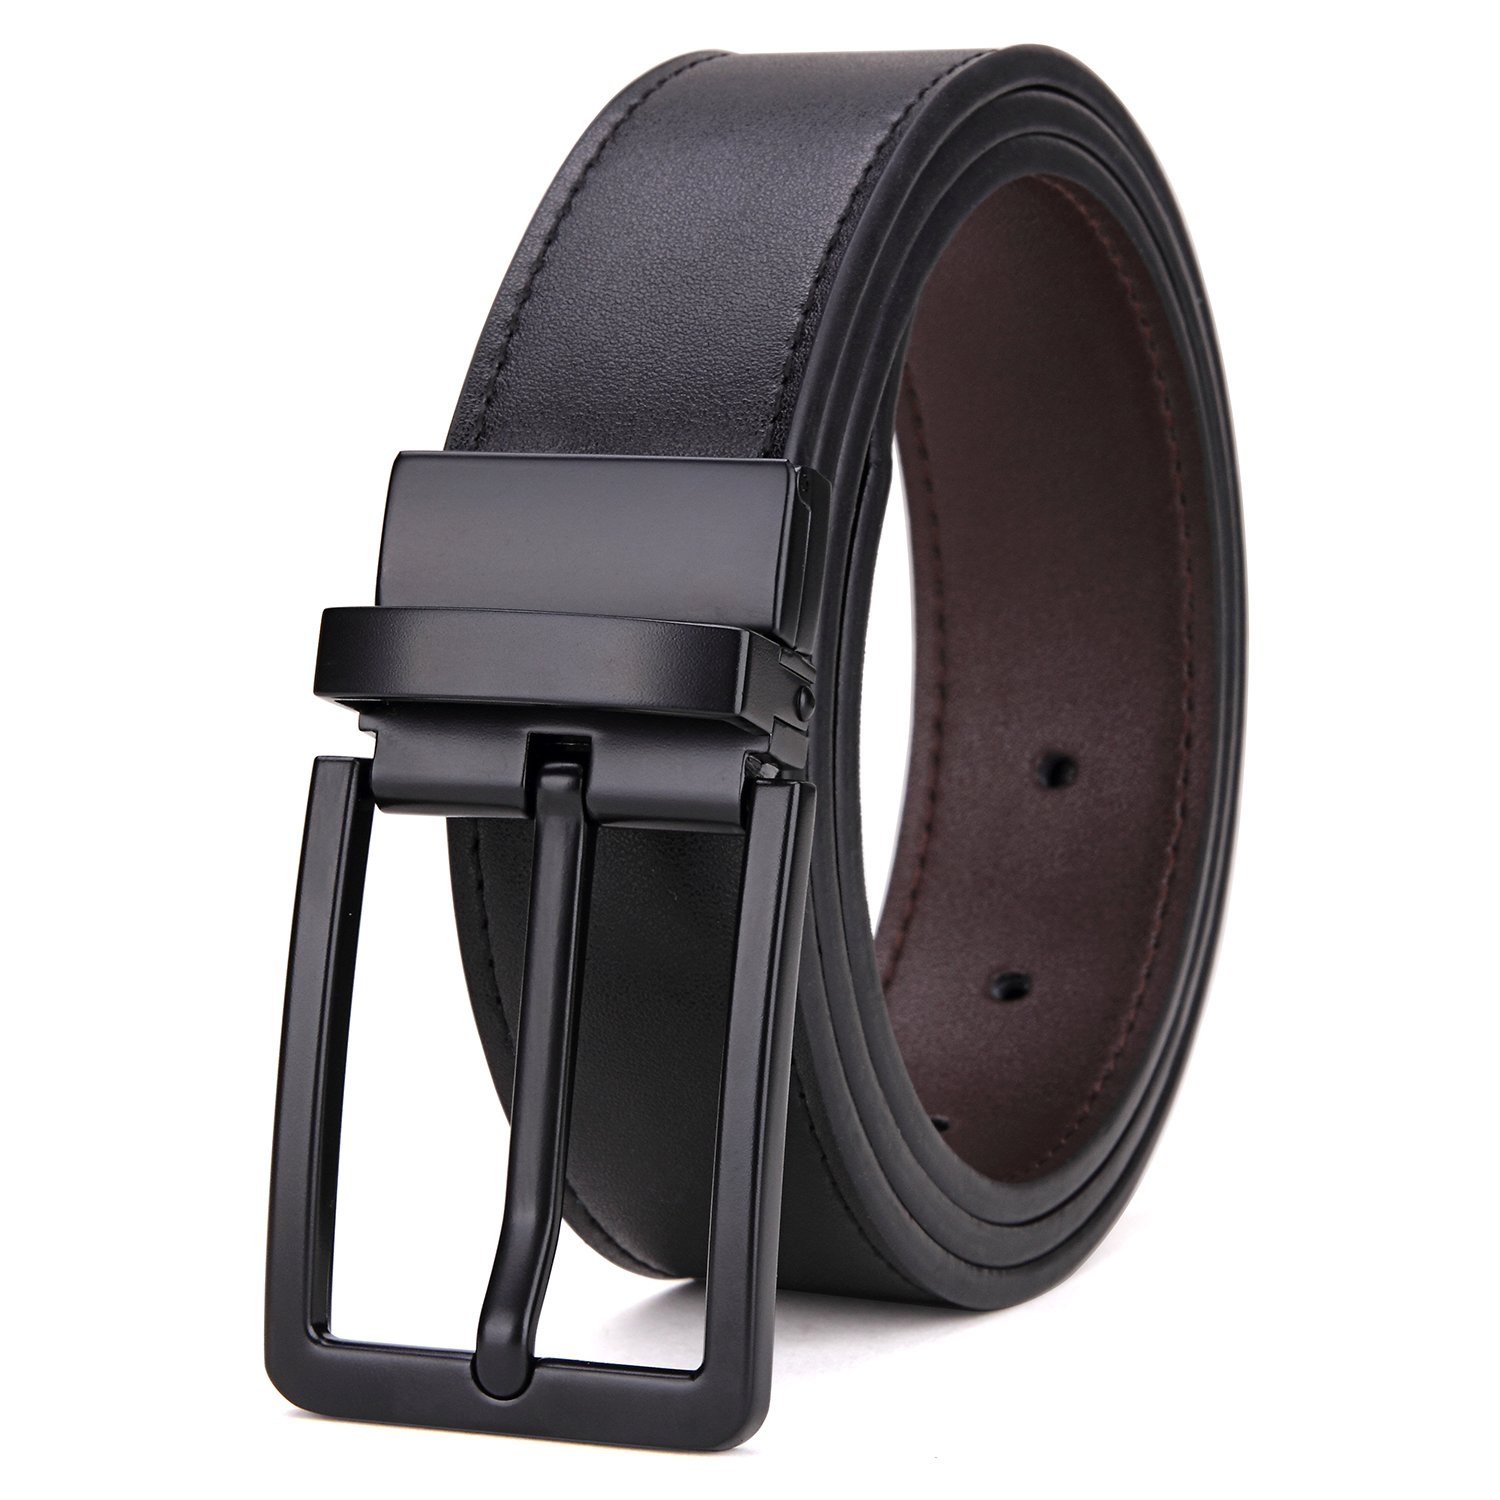 Matasuha Men's Dress Leather Belt Reversible Rotated Buckle Black, 35 36 Waist